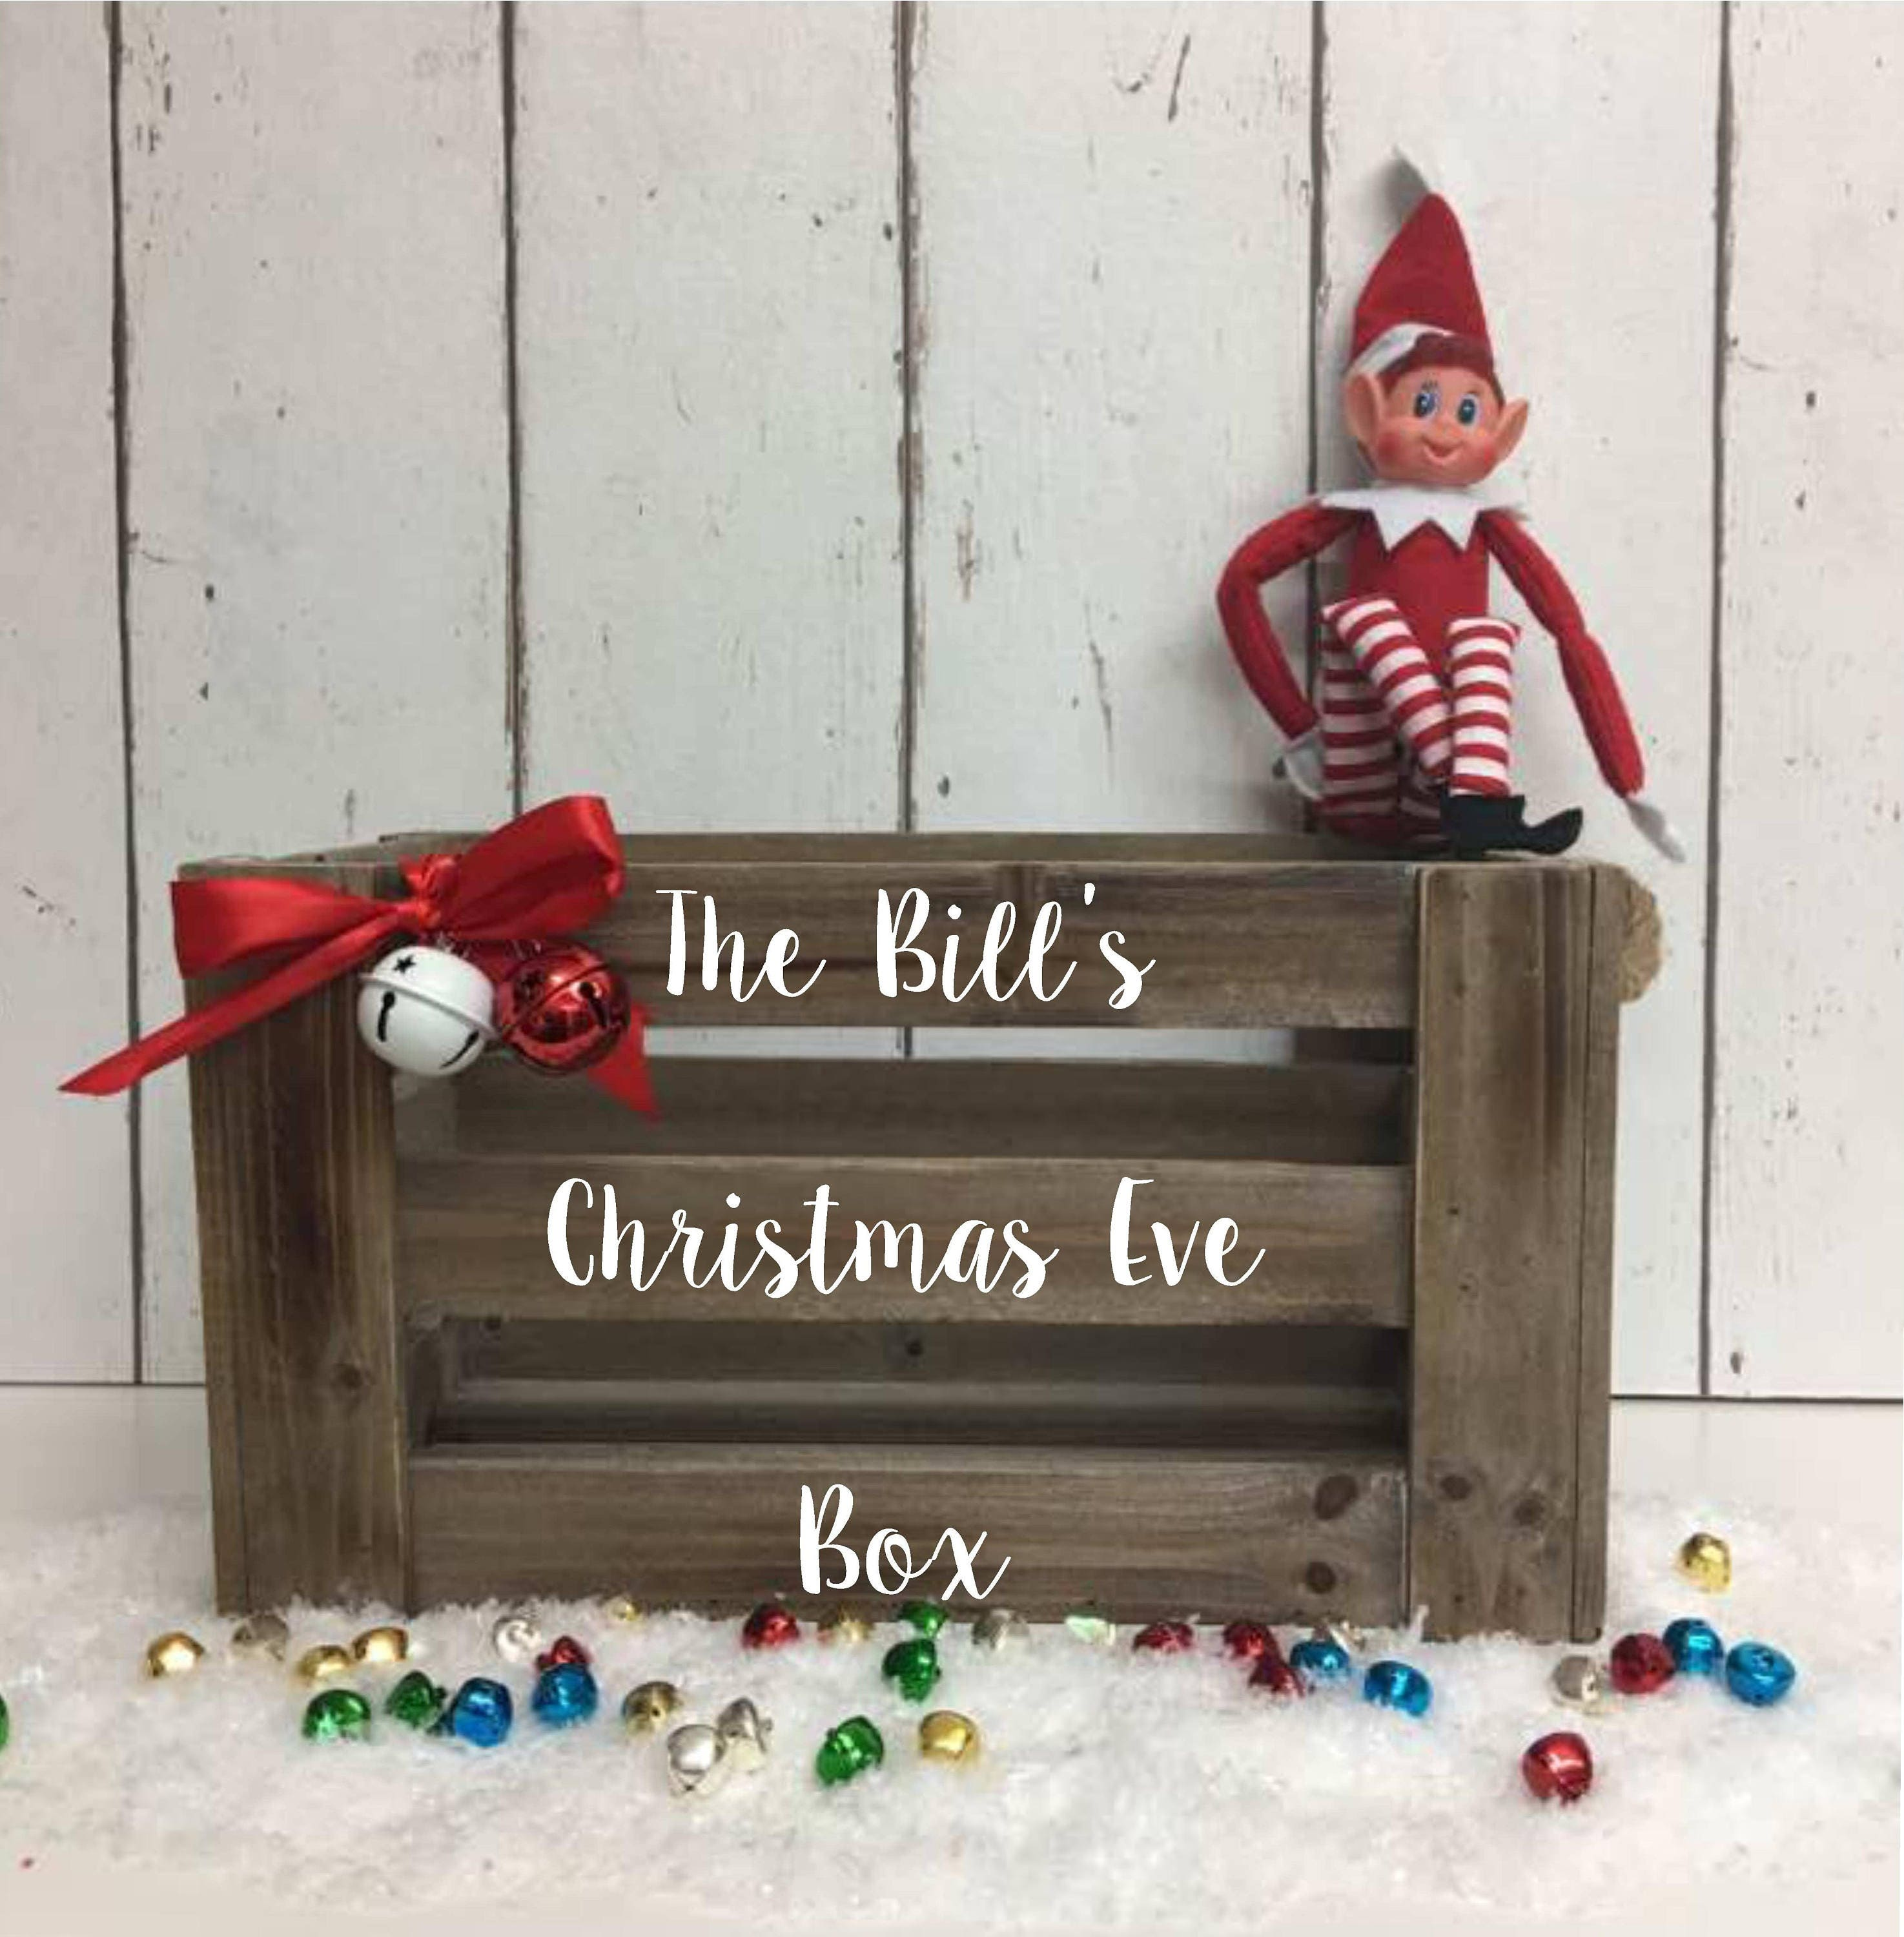 Christmas Eve Crate.Family Christmas Eve Crate Family Christmas Eve Box Personalised Christmas Eve Box Mdf Crate Xmas Eve Box Rustic Christmas